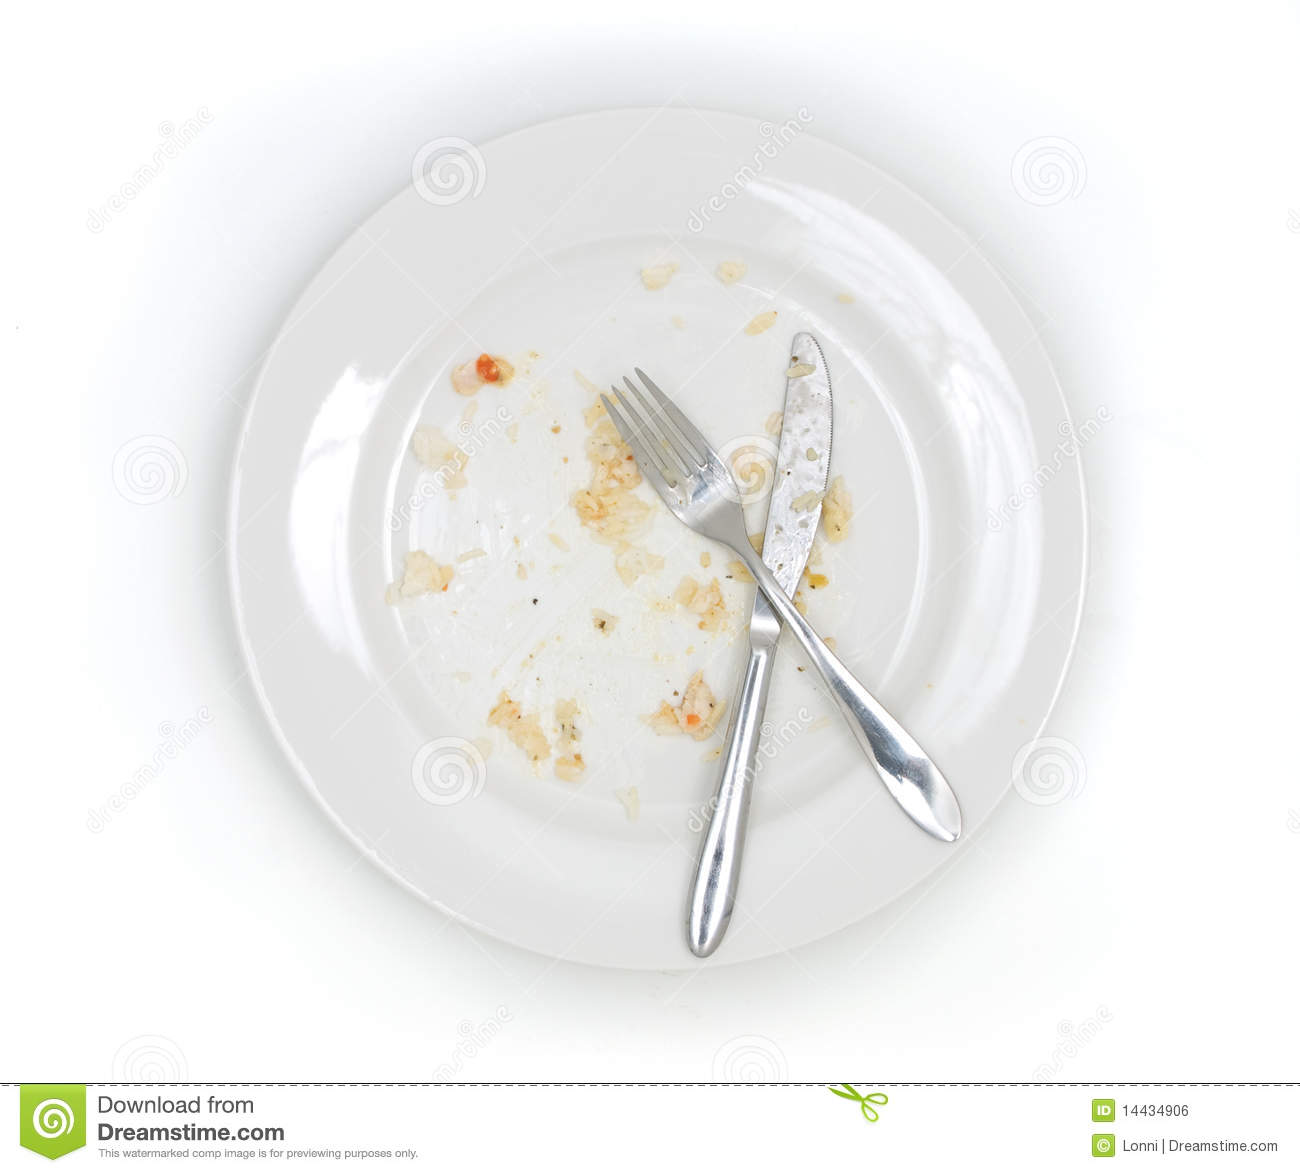 An empty plate, dirty after the meal is finished. View from above.